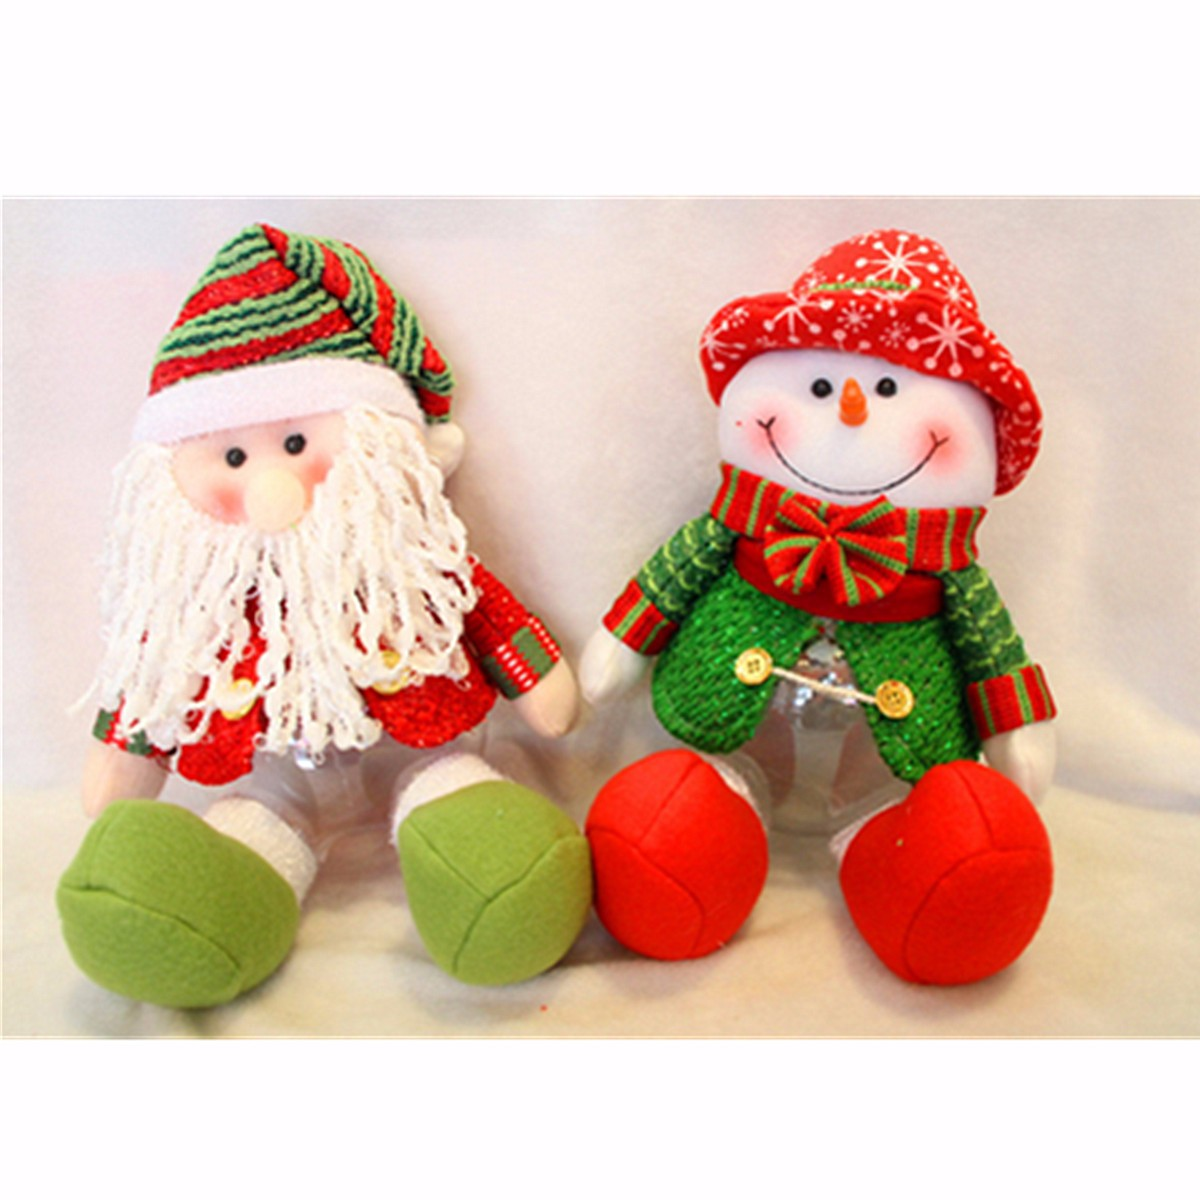 Lovely Snowman Santa Claus Candy Round Jar Bottle Christmas Kid Toy Doll Gift Decor - Photo: 2